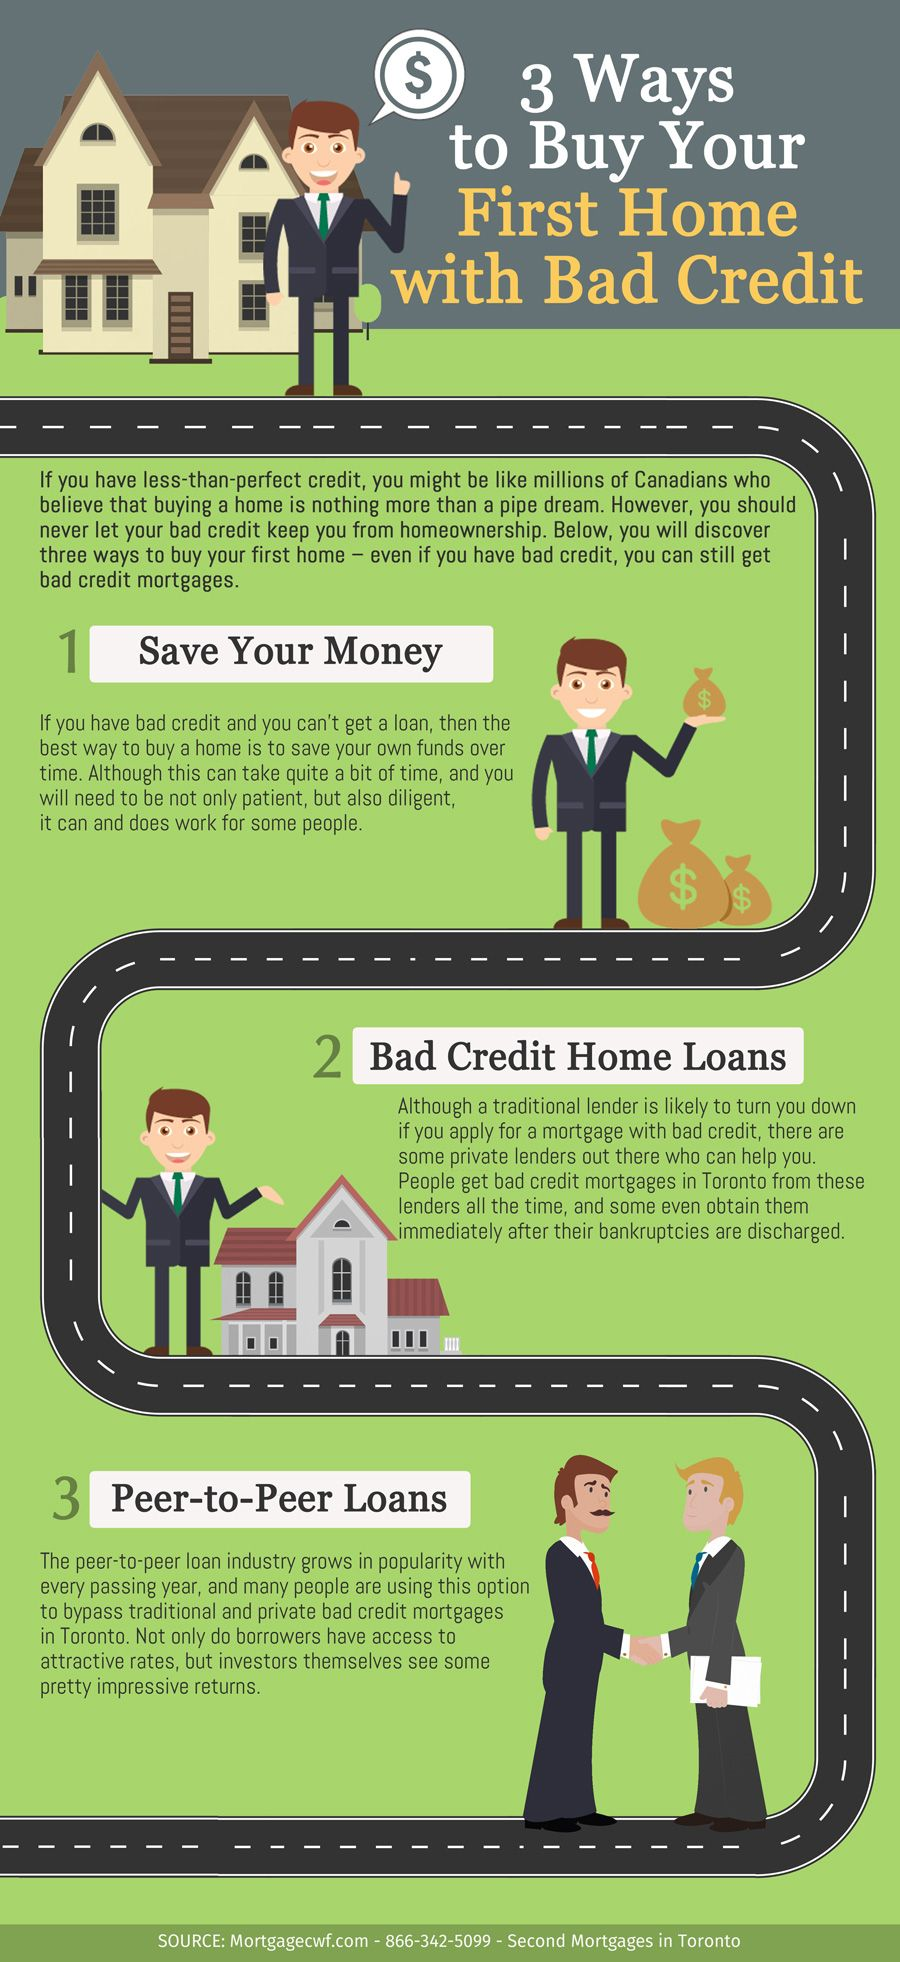 However there are several ways to buy your first house even with bad credit